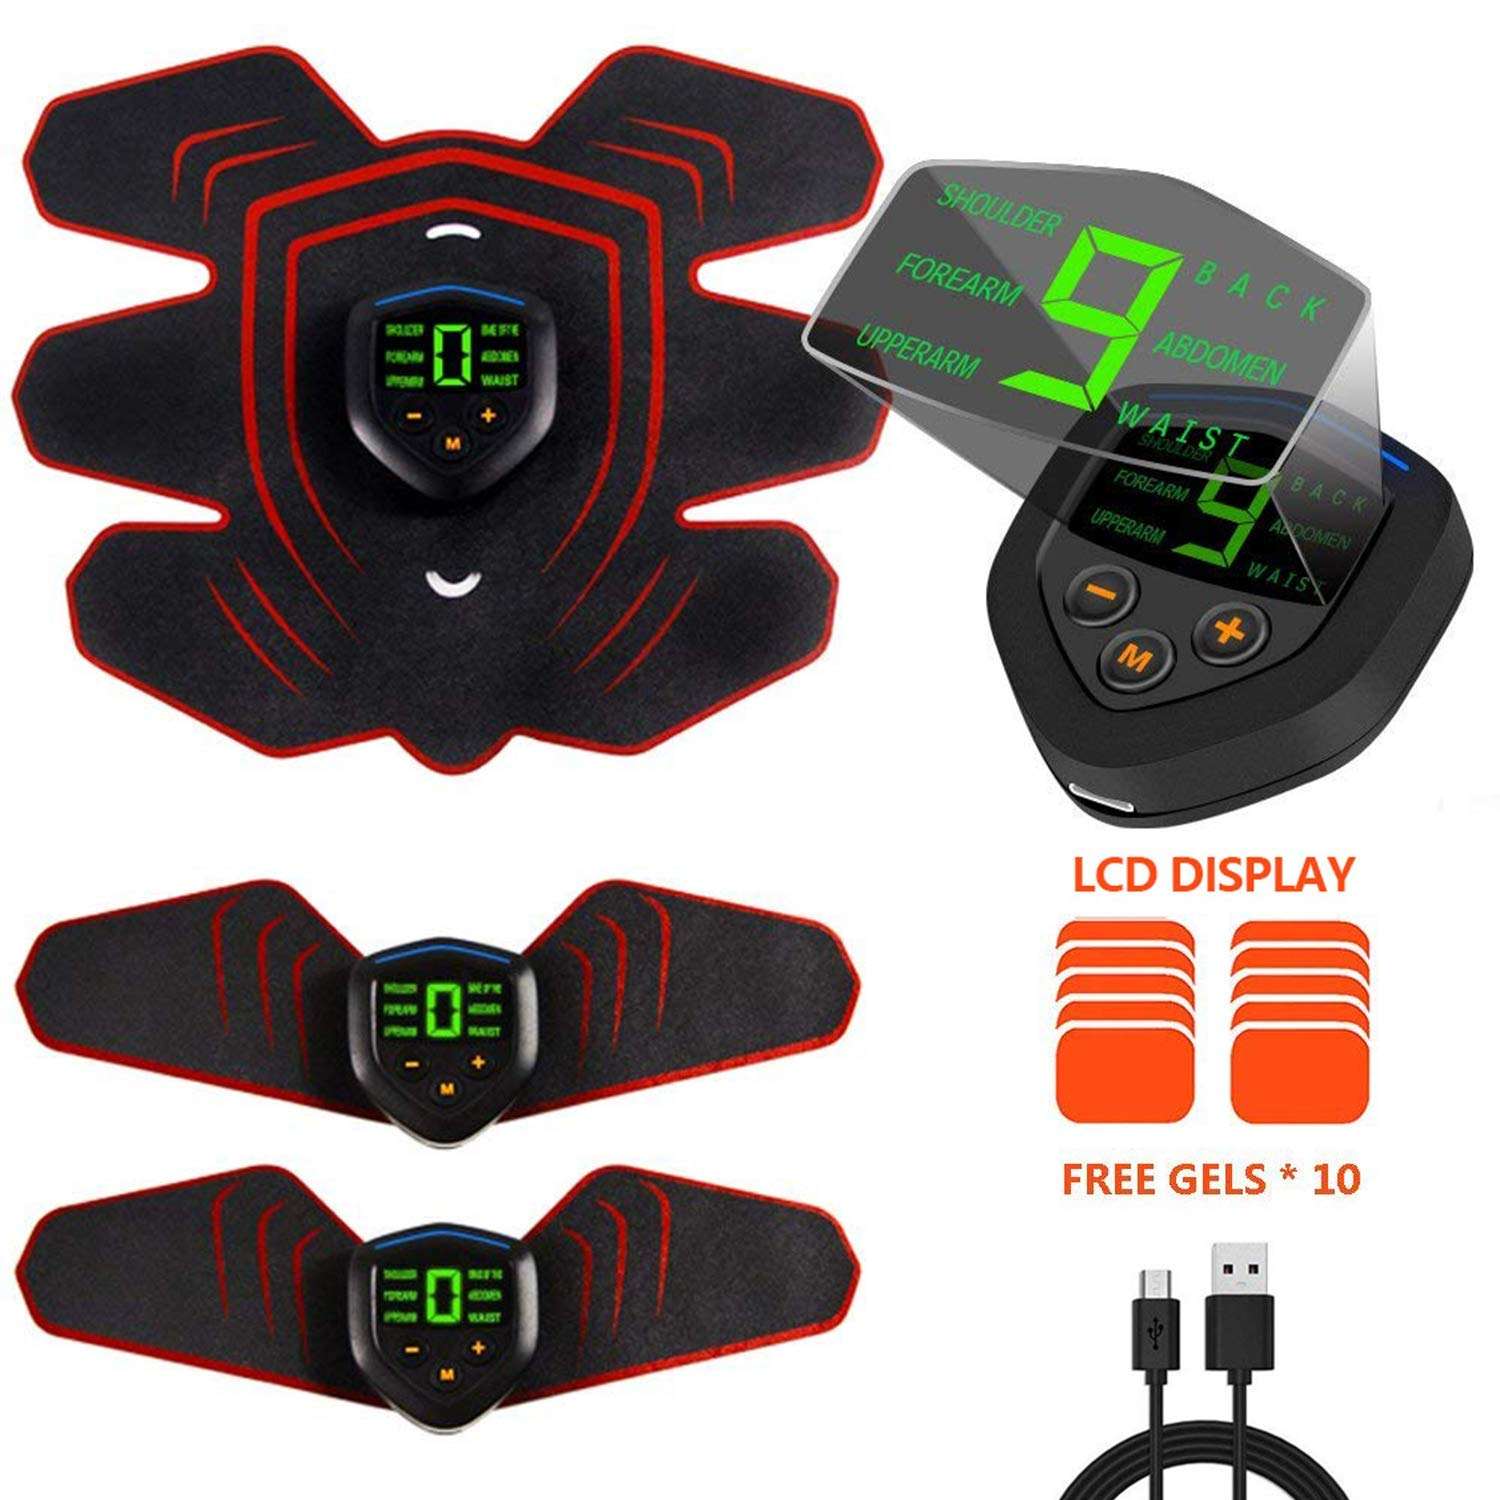 ABS Stimulator Muscle Toner Rechargeable, EMS Abdomen Muscle Trainer with 6 Modes 10 Levels, Muscle Toner Toning Belt for Men Women, Free 10pcs Gel Pads Included by Makoya (Image #2)